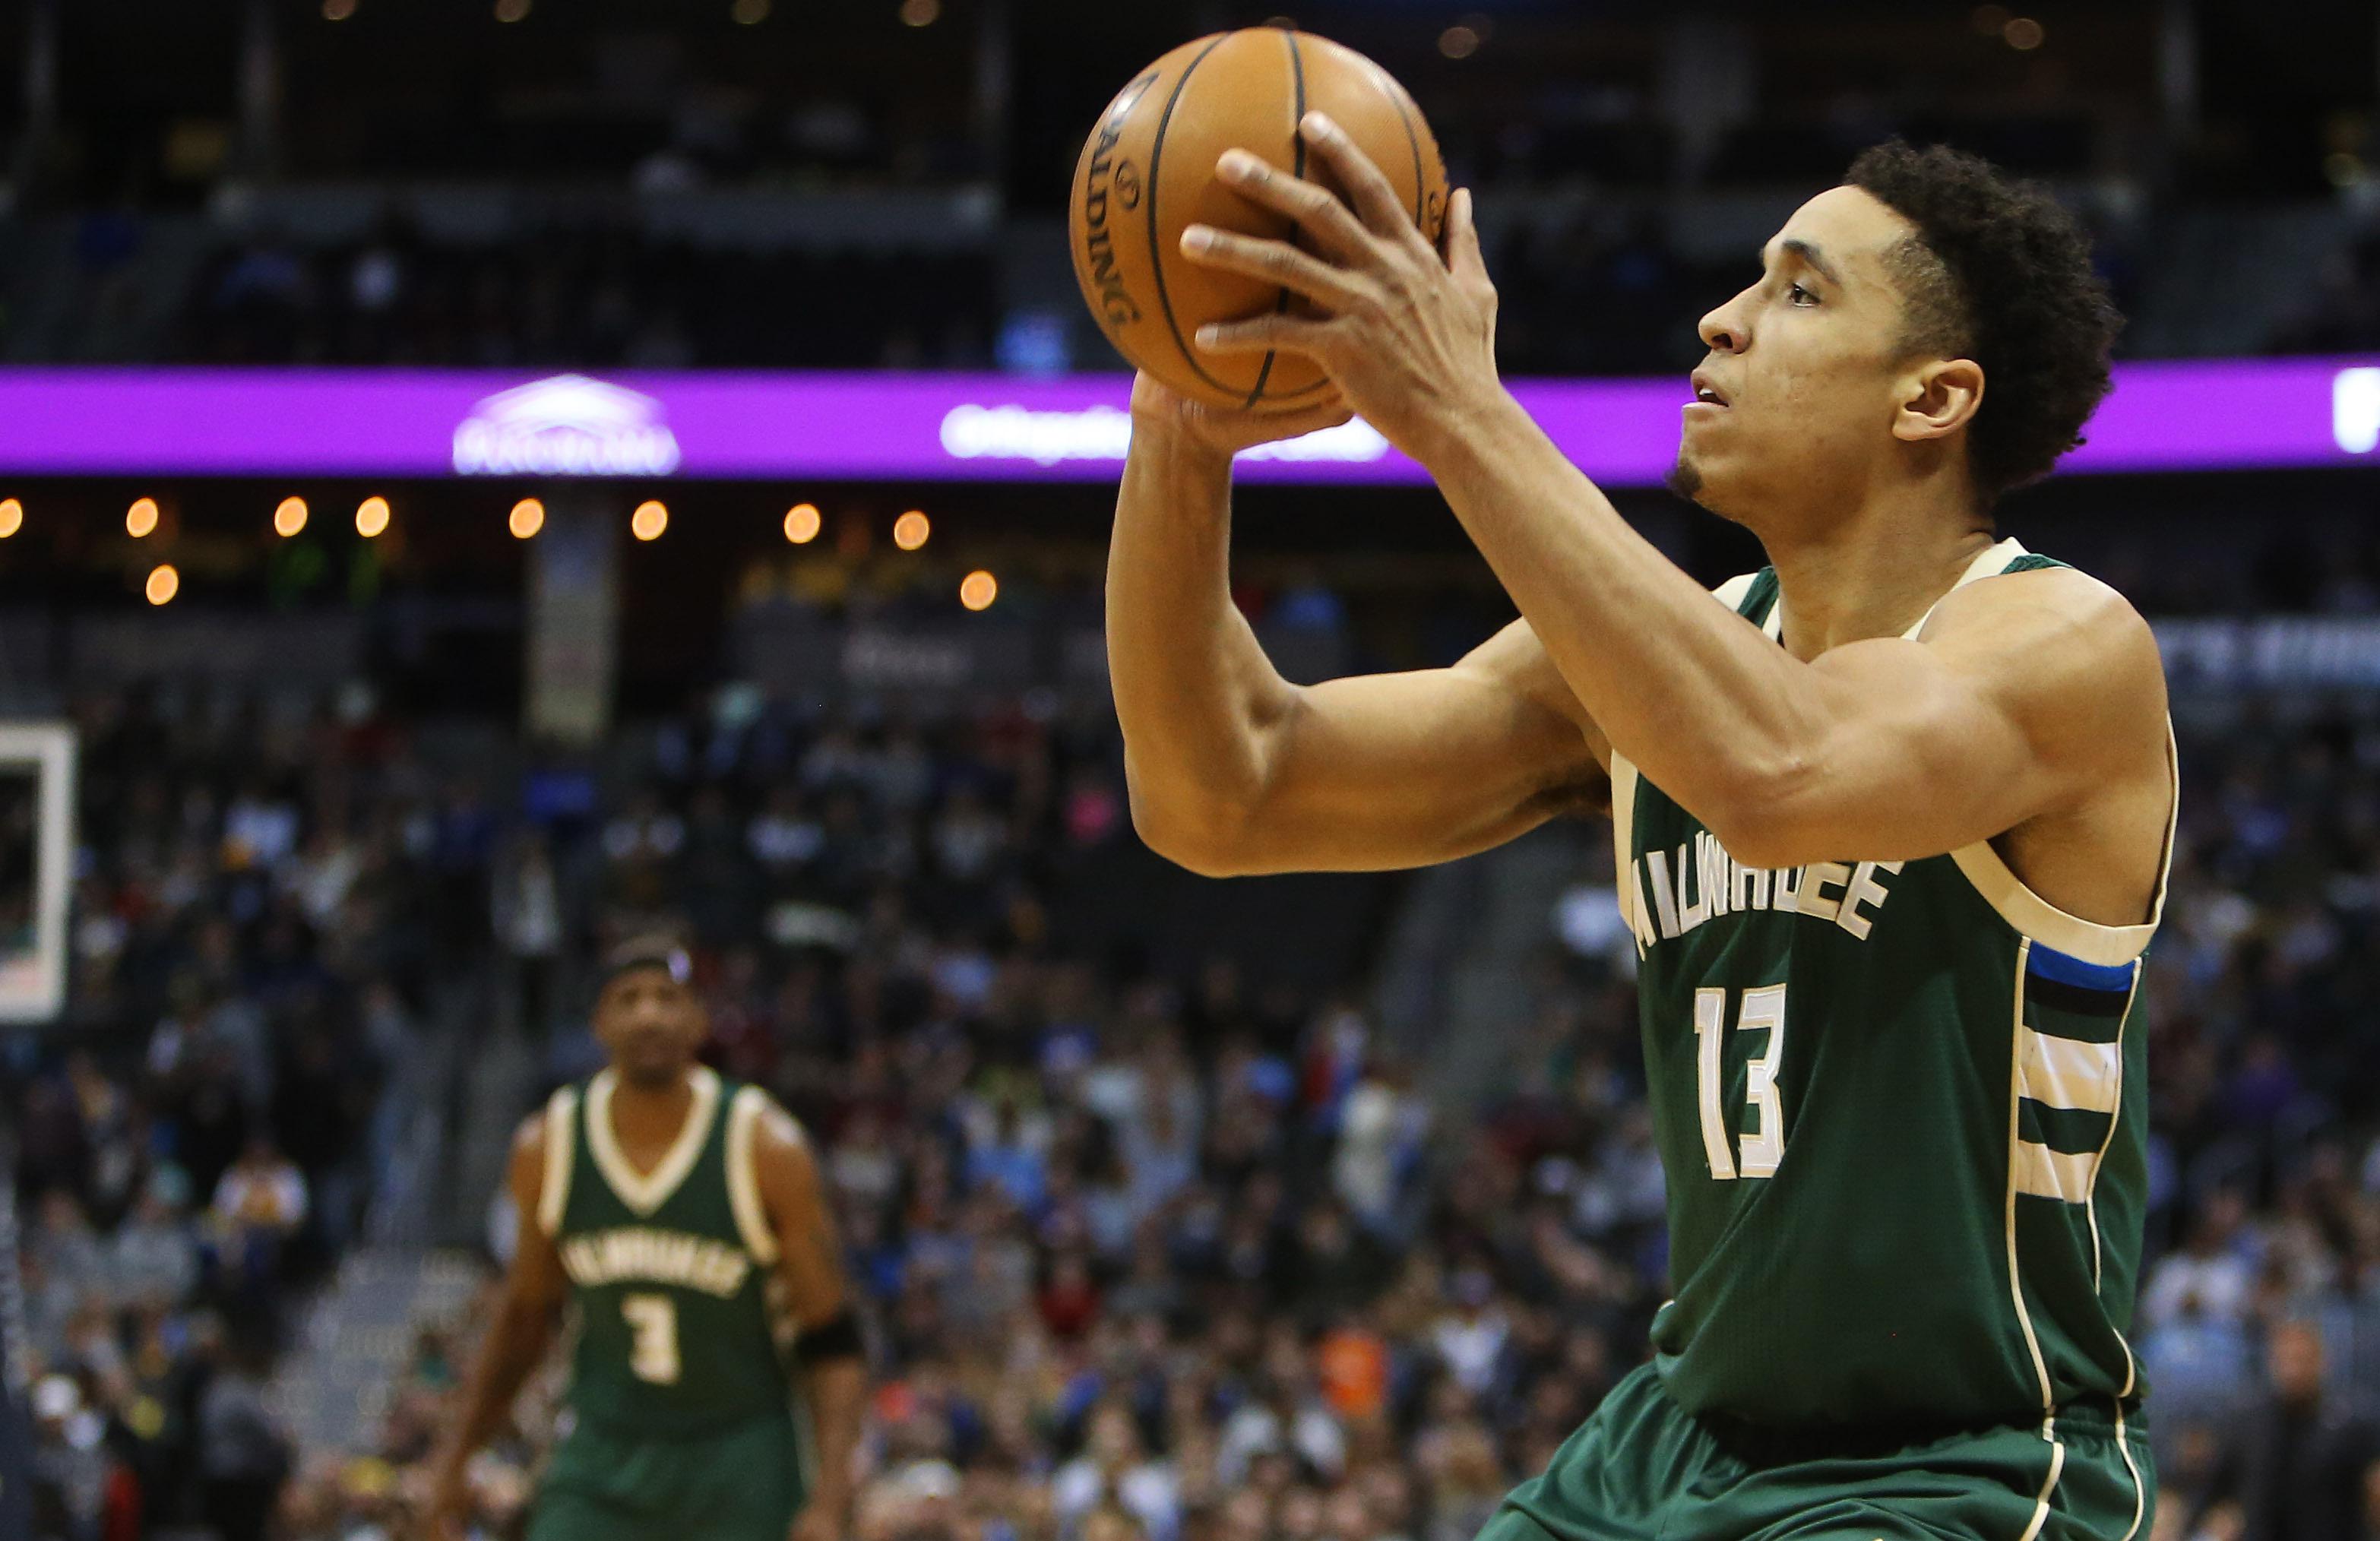 Feb 3, 2017; Denver, CO, USA; Milwaukee Bucks guard Malcolm Brogdon (13) shoots the ball during the first half against the Denver Nuggets at Pepsi Center. Mandatory Credit: Chris Humphreys-USA TODAY Sports